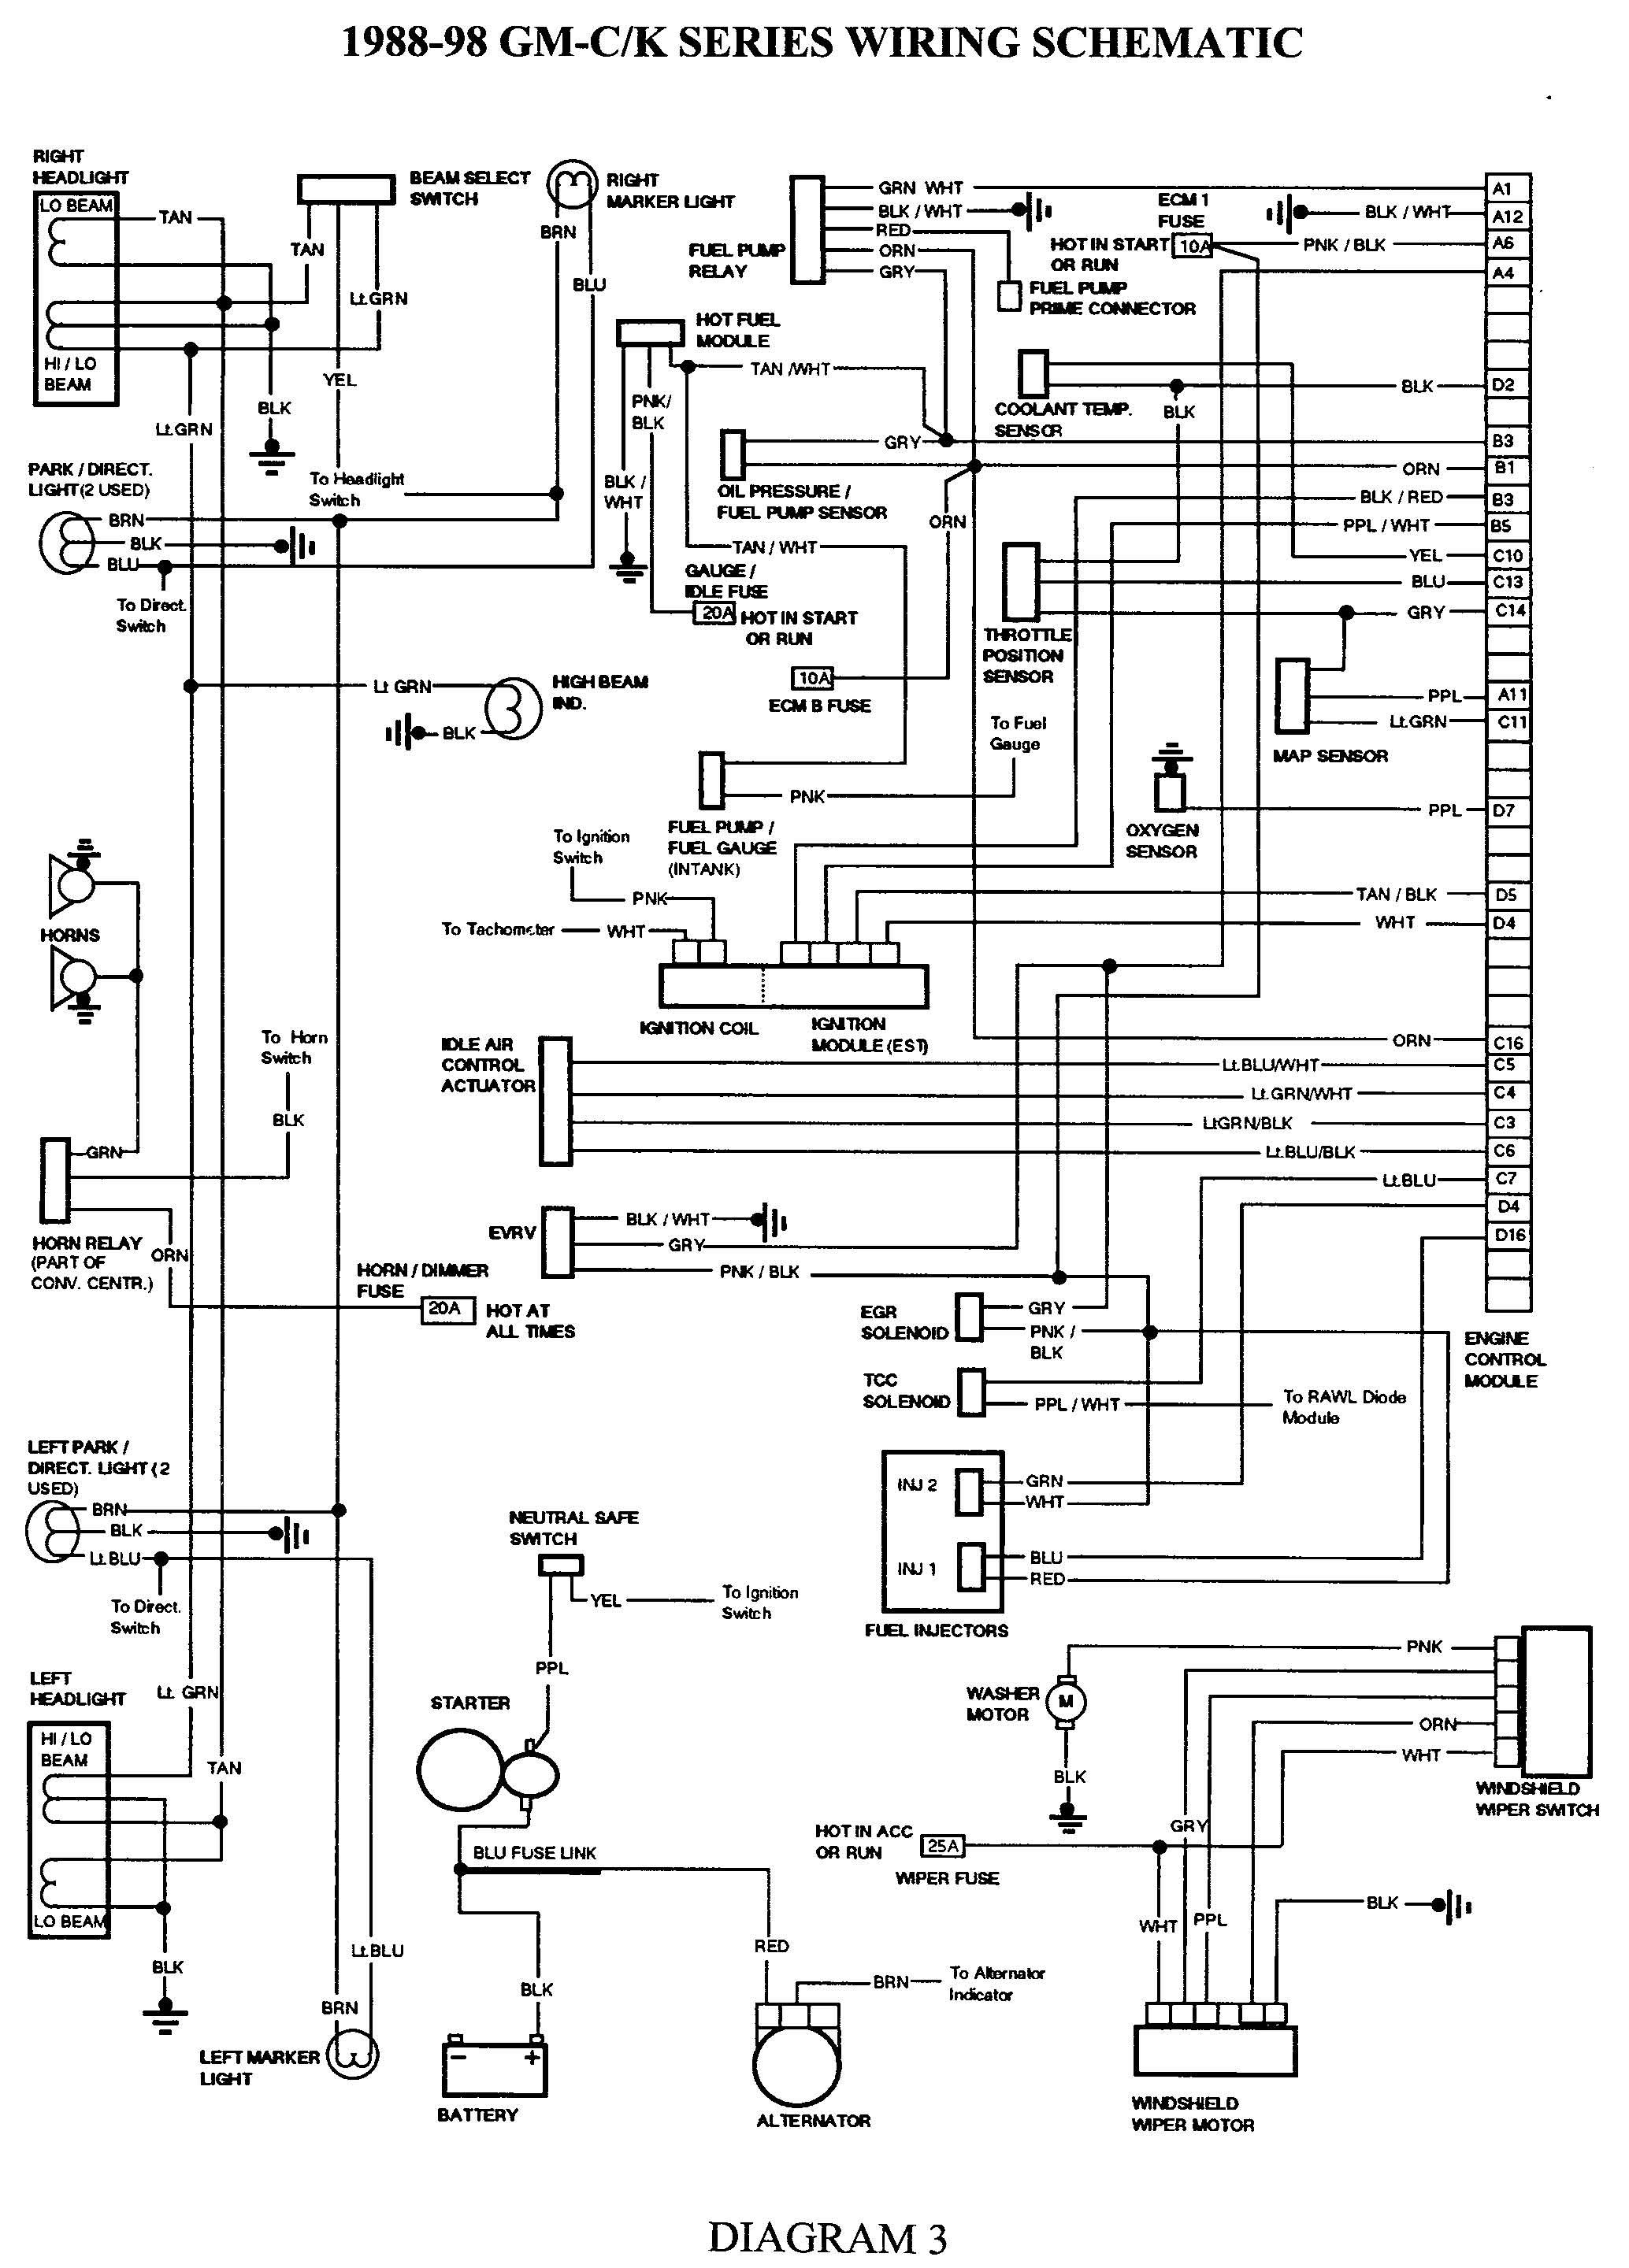 1974 C10 Wiring Diagram | Wiring Diagram Ignition Wiring Diagram Chevy Pichup on